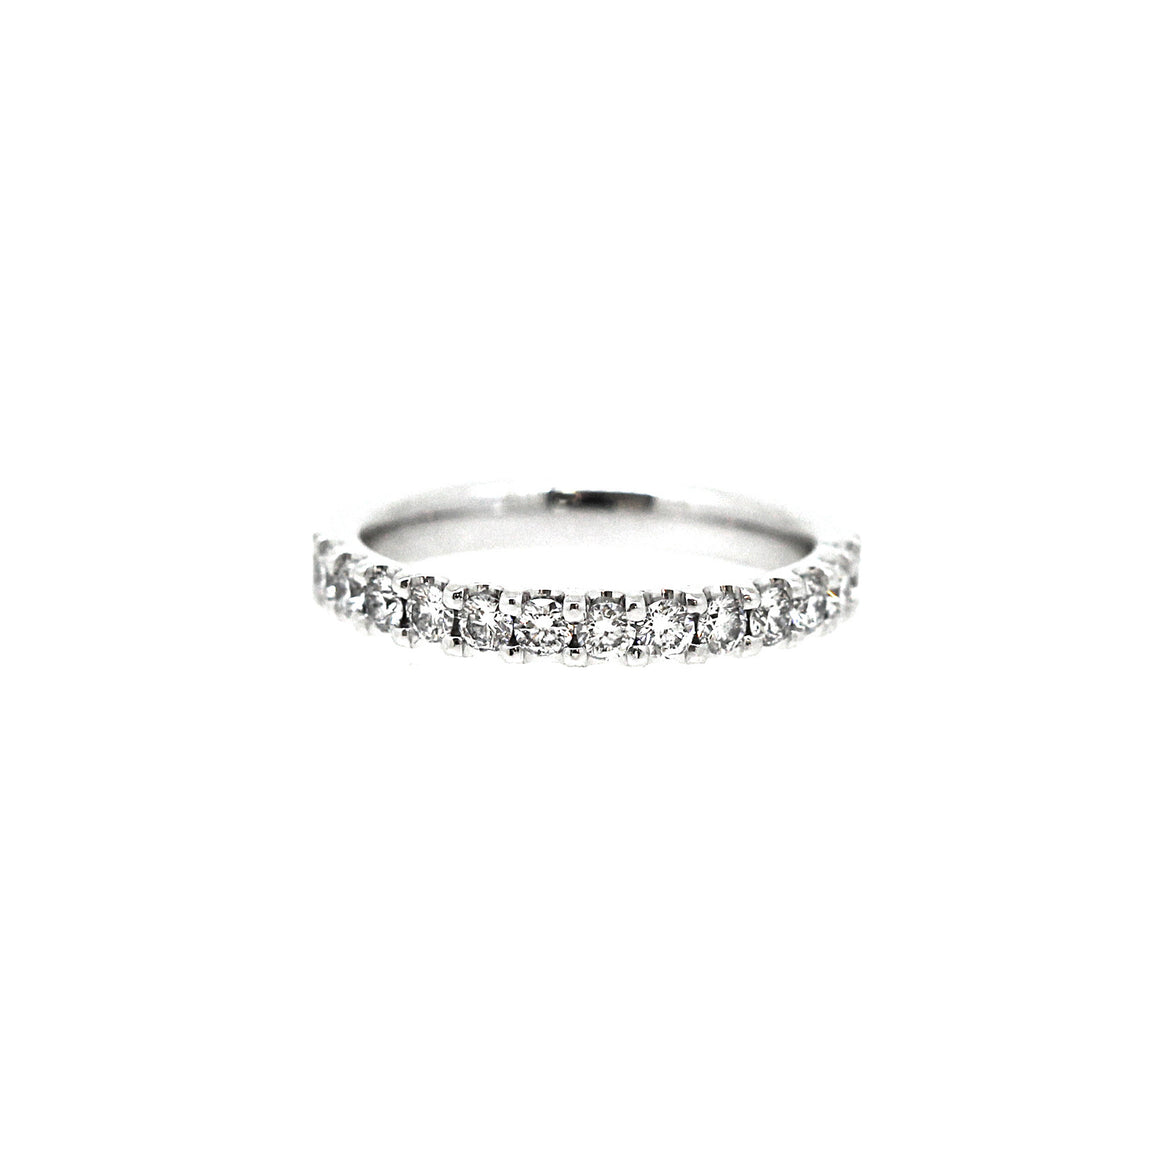 4-Claw 0.36 carat White Gold Diamond Ring